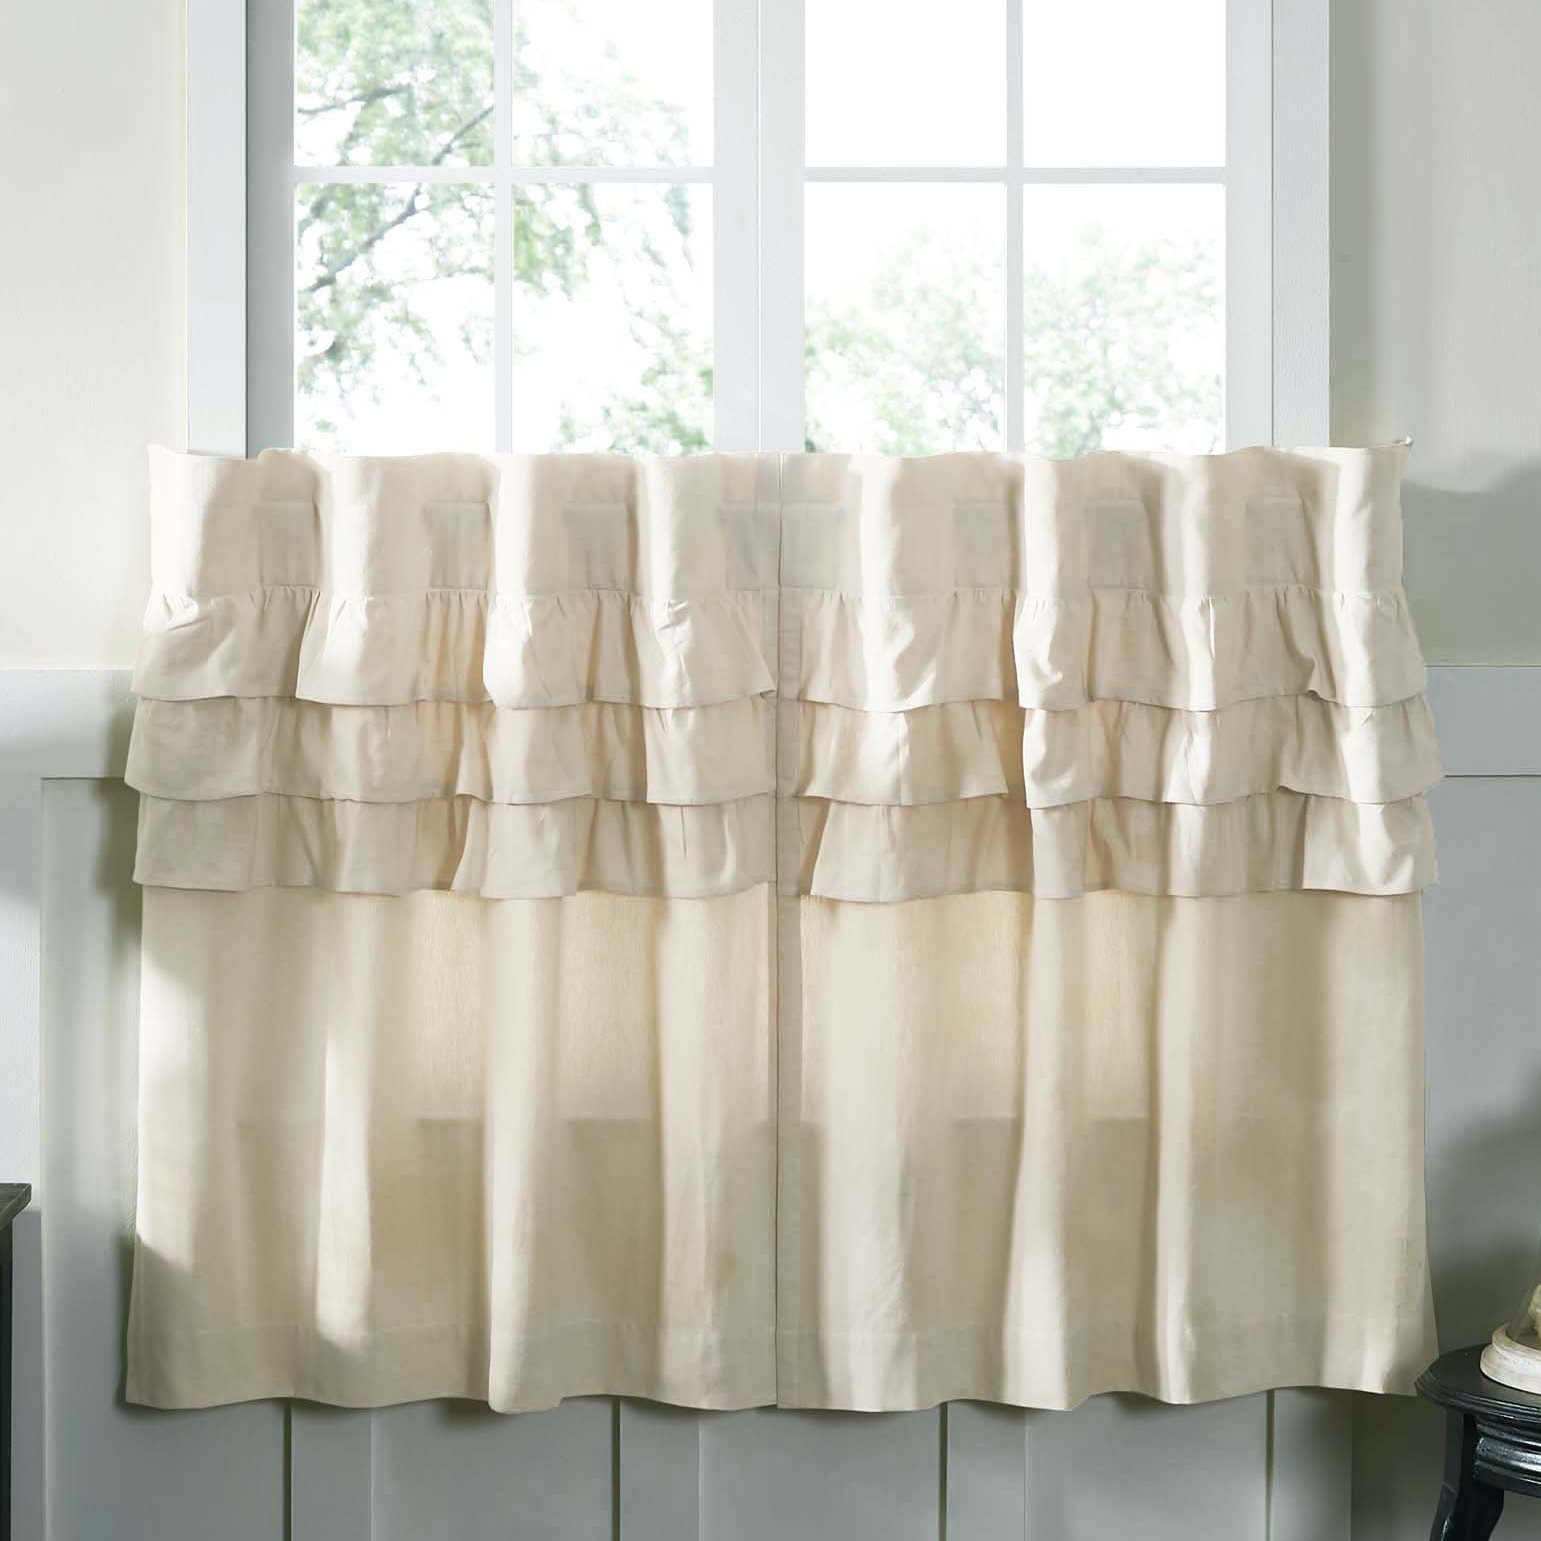 Piper Classics Ruffled Chambray Natural Beige, Lined Tiers, Cafe Curtains, Set of 2, L36 x W36 Farmhouse Style Curtains by Piper Classics